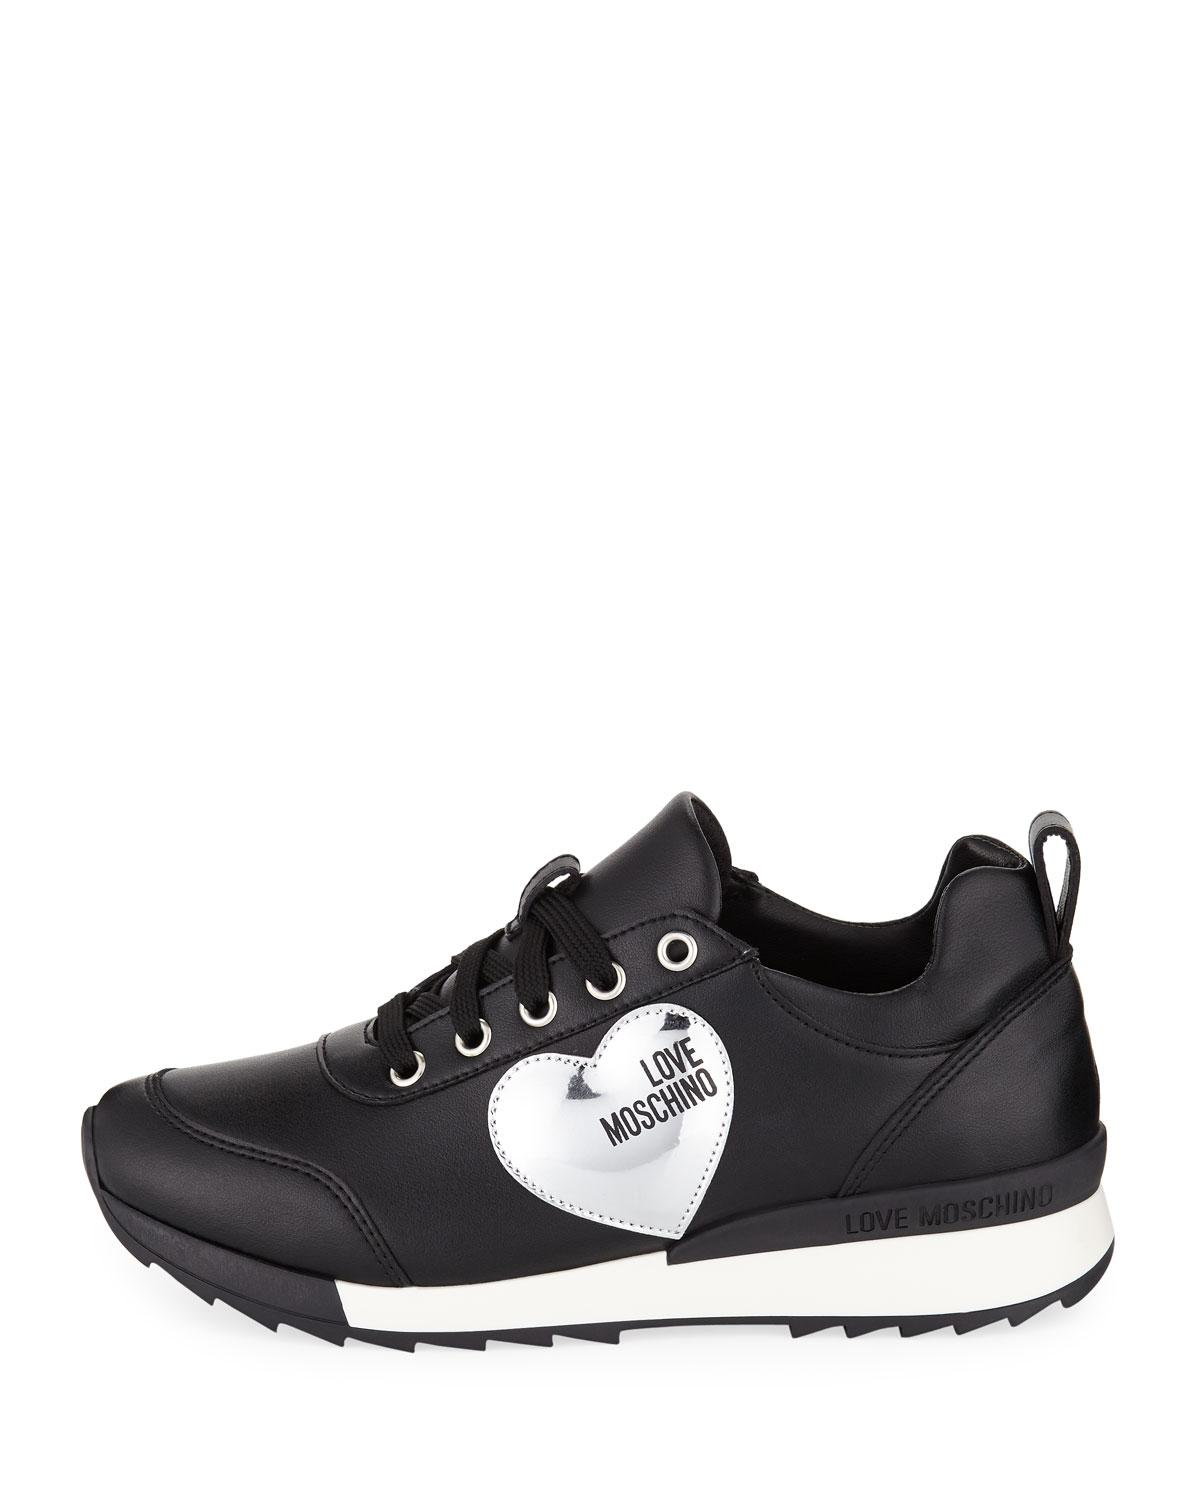 acc73449b7d Lyst - Love Moschino Power Leather Platform Sneakers in Black